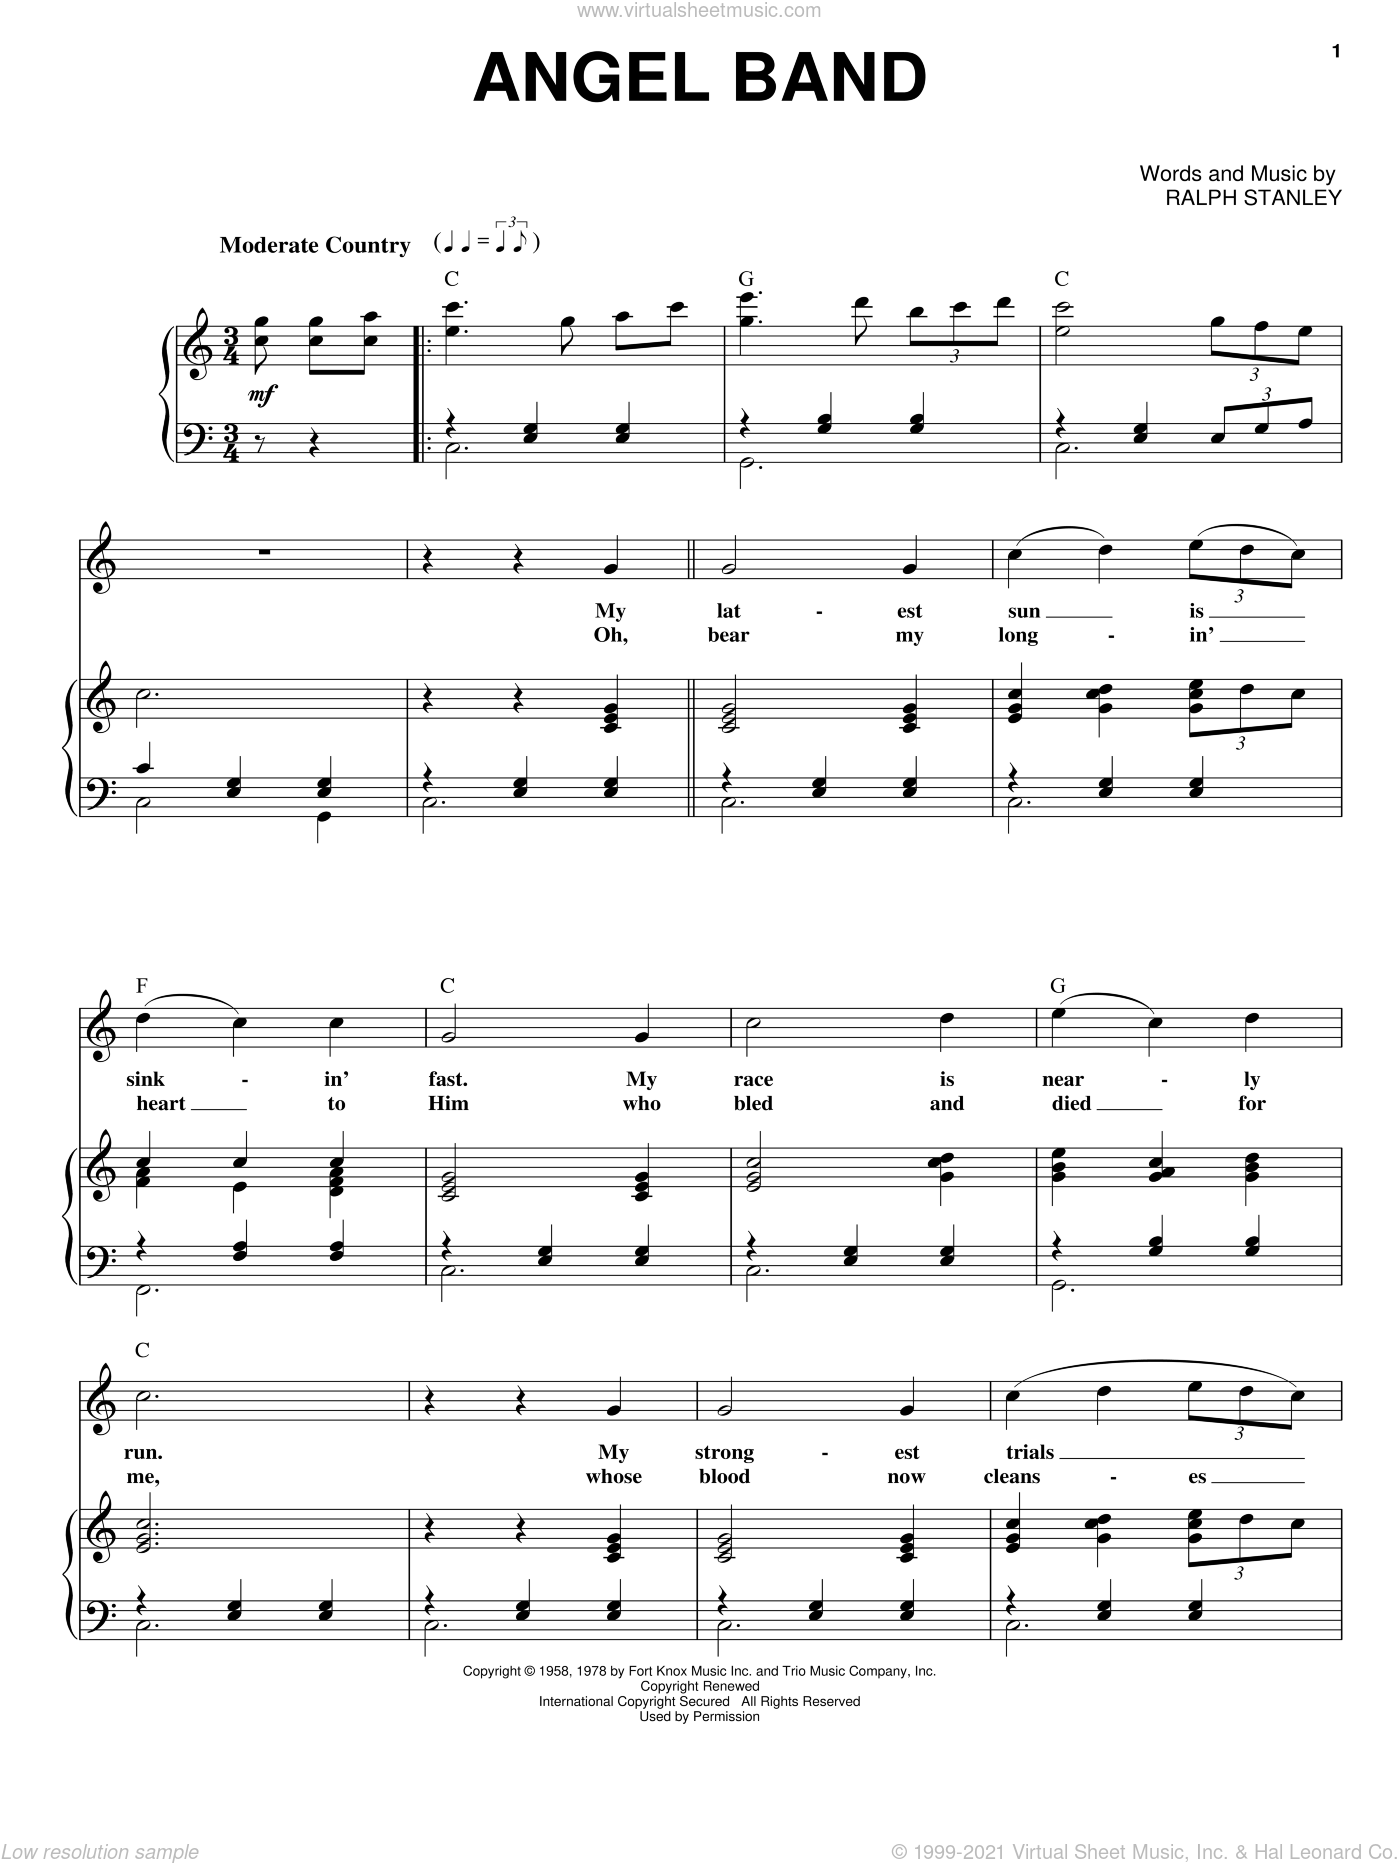 Angel Band sheet music for voice and piano by Ralph Stanley